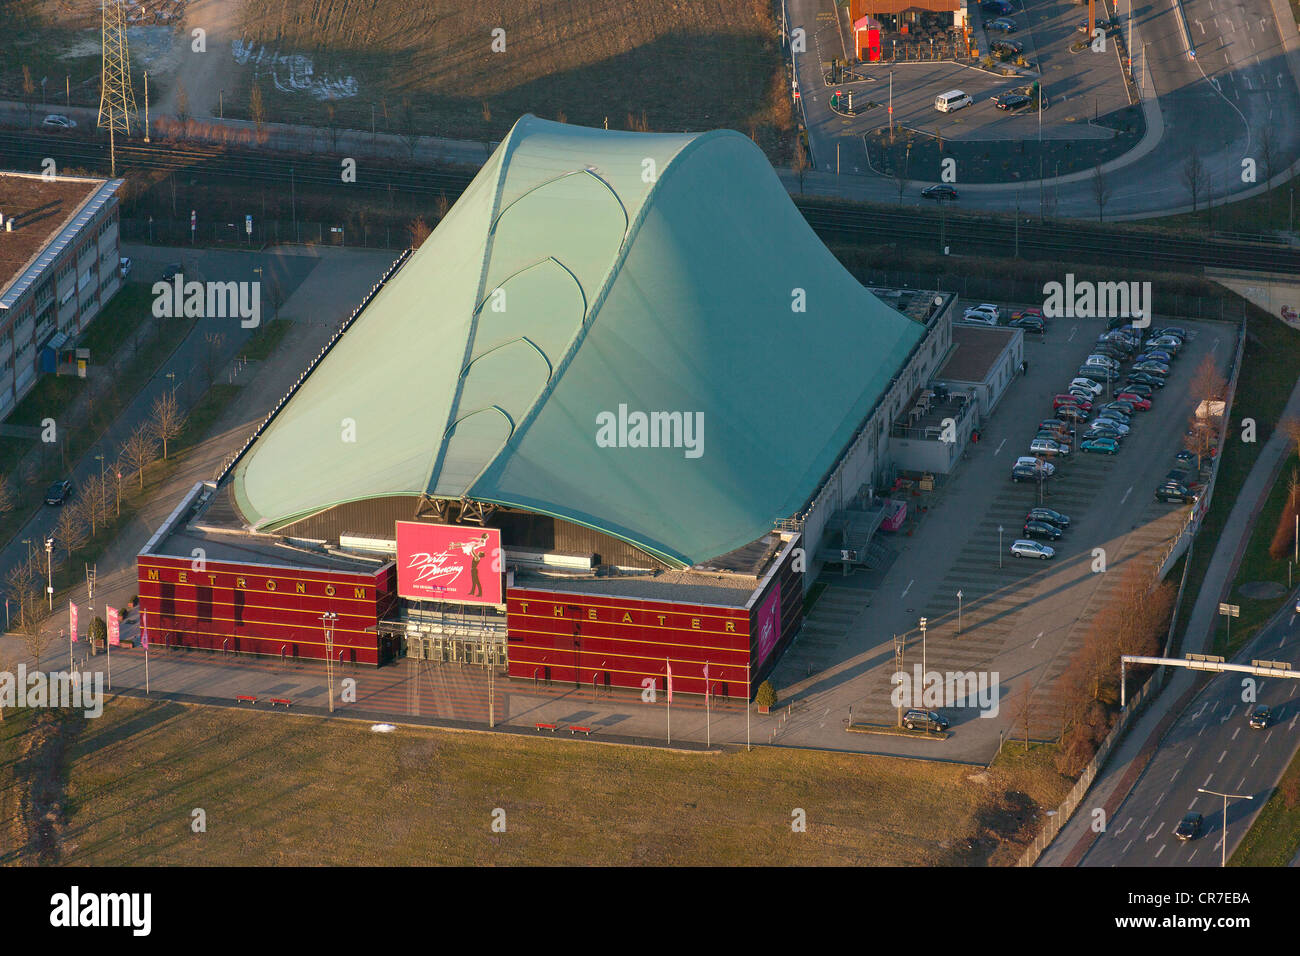 Aerial view, Metronom Theater, venue of the musical 'Dirty Dancing', Neue Mitte Oberhausen, new town centre, - Stock Image